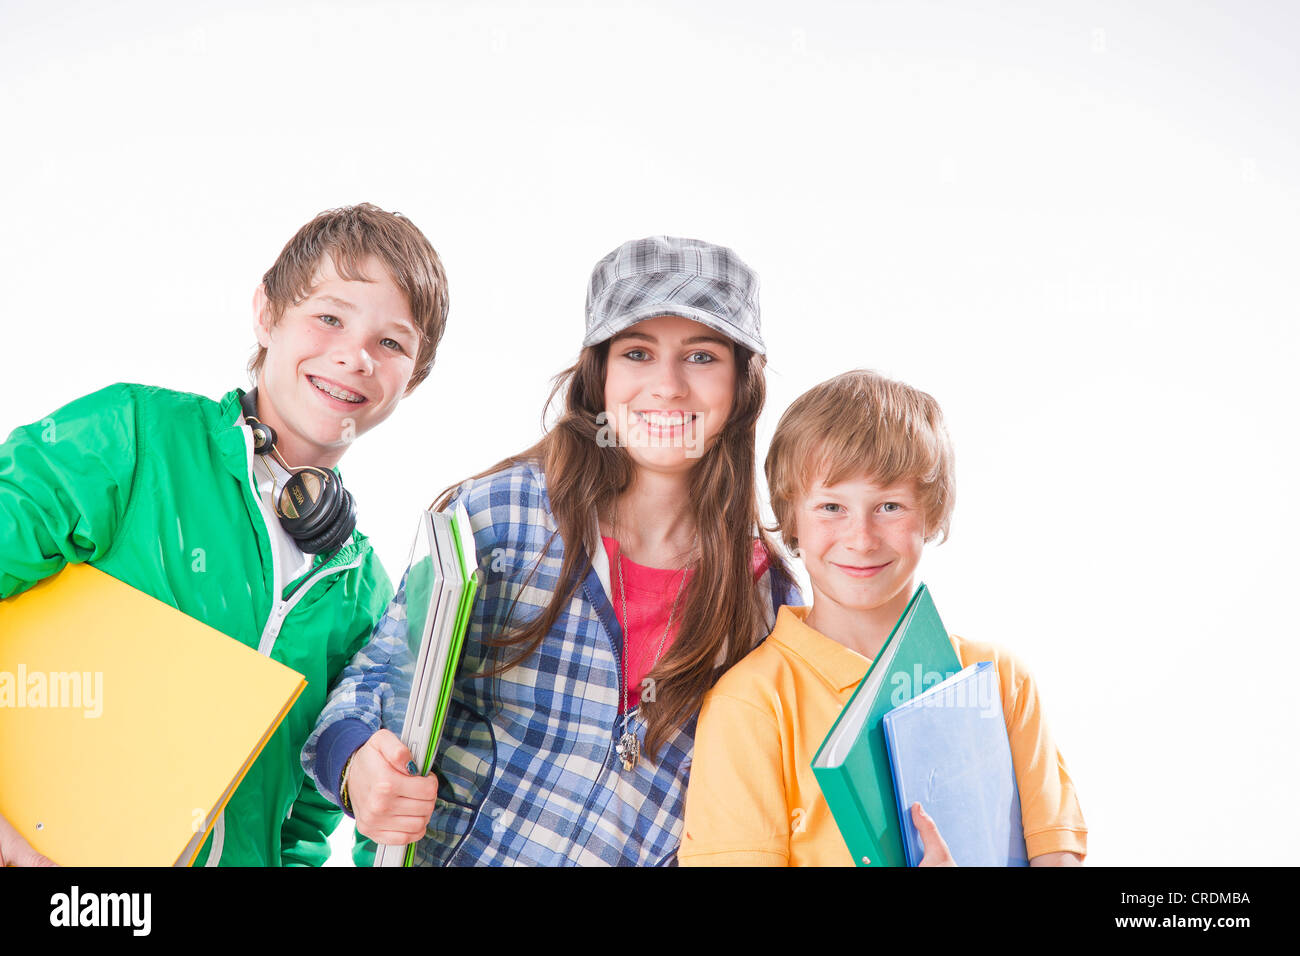 Three Friends, One Girl And Two Boys, With Folders